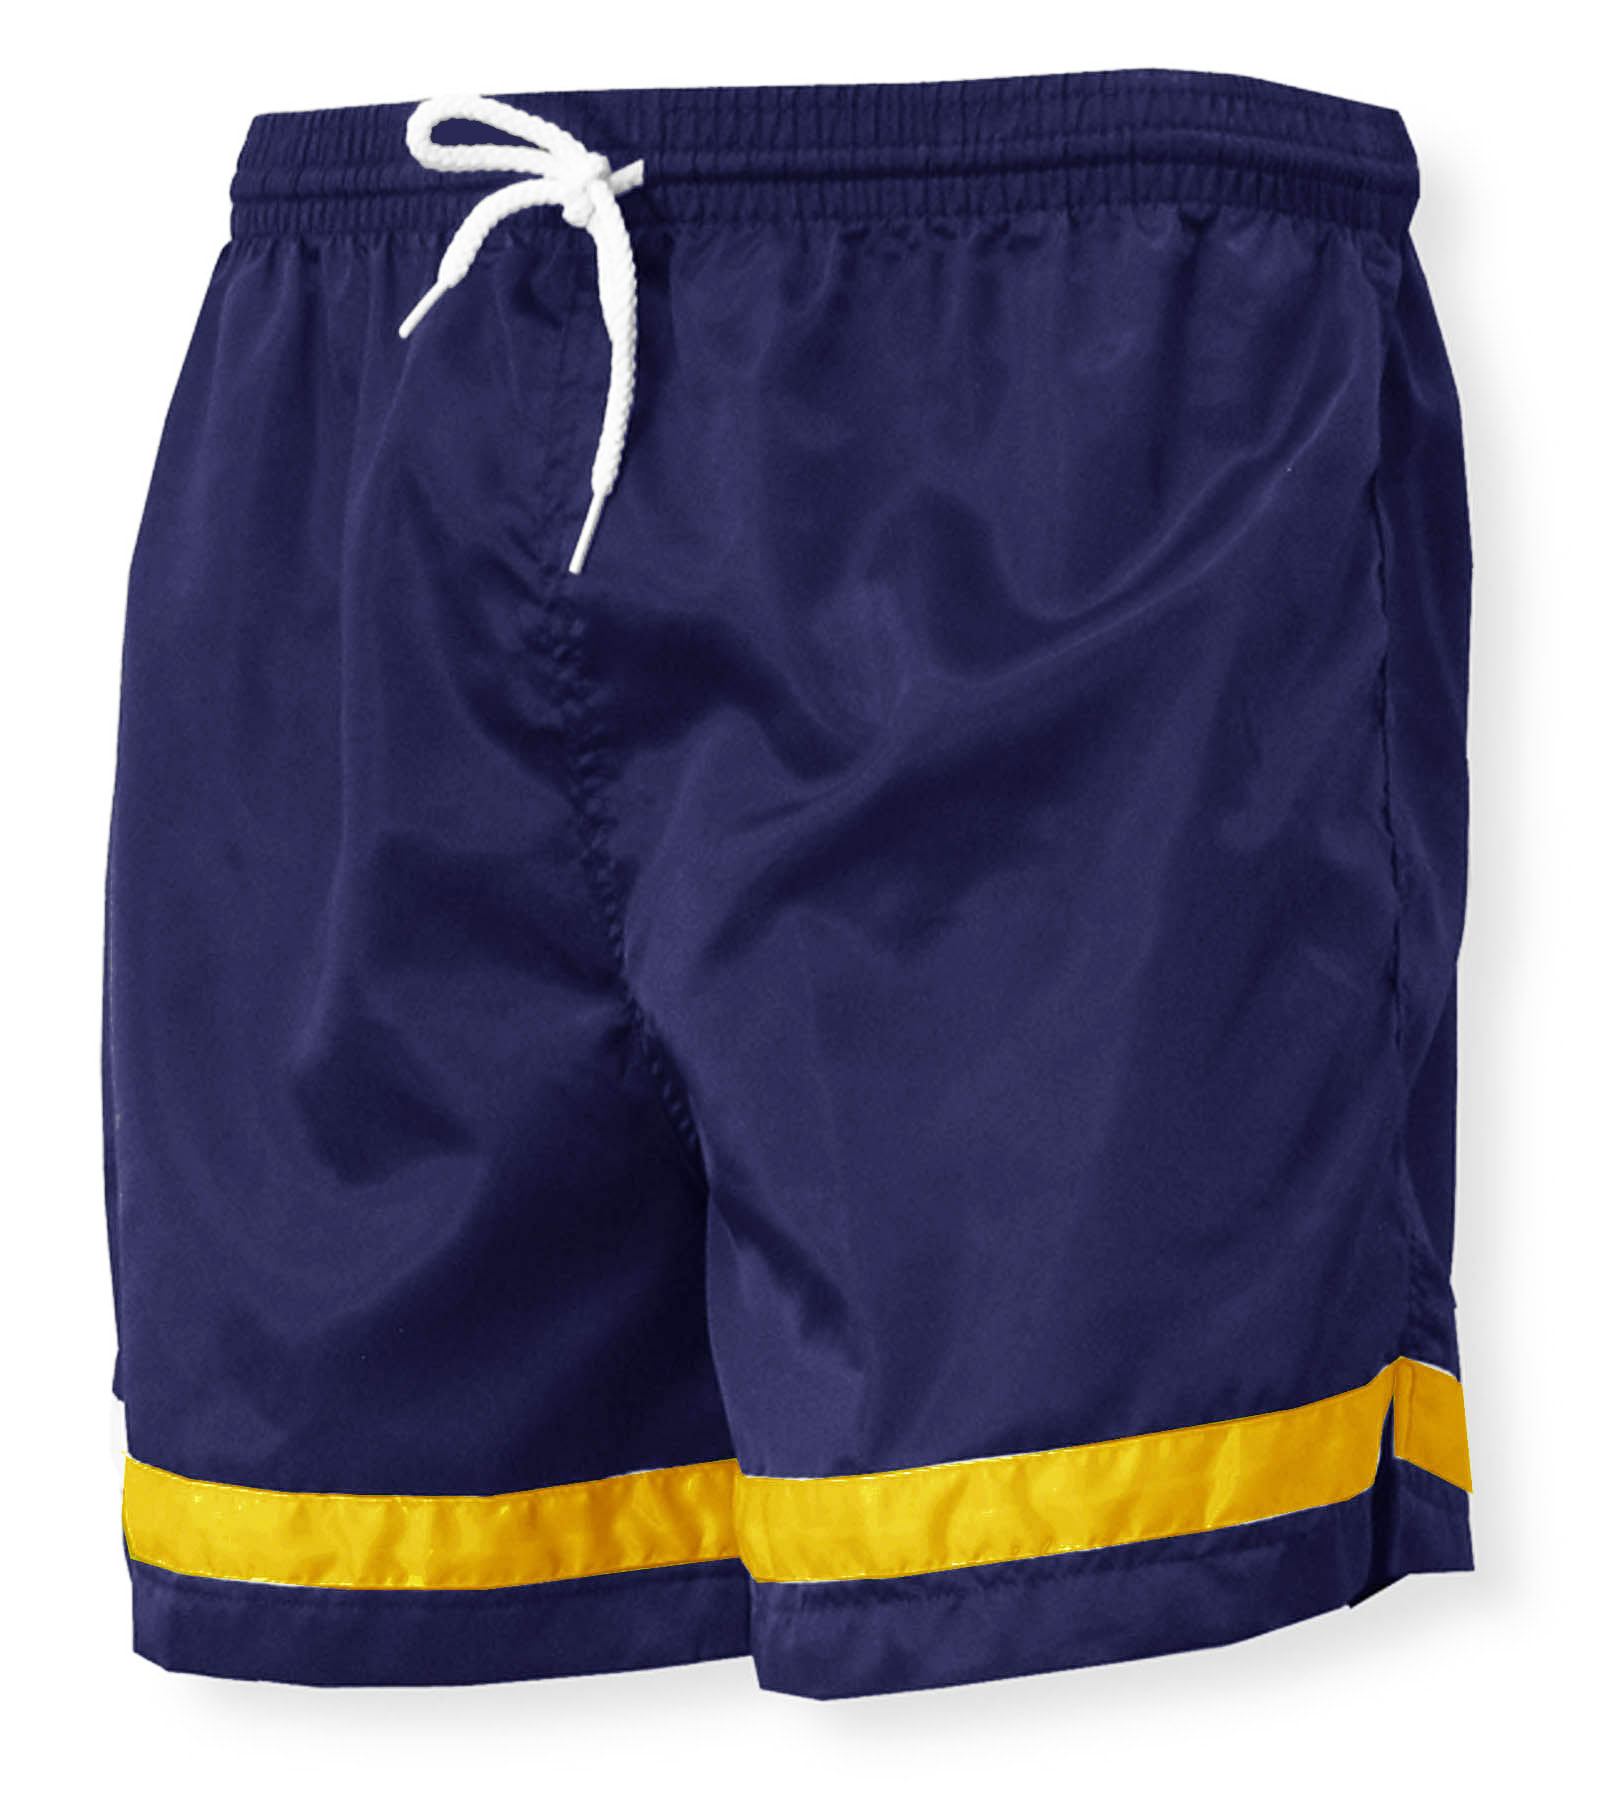 Vashon nylon soccer shorts in navy with gold stripes by Code Four athletics